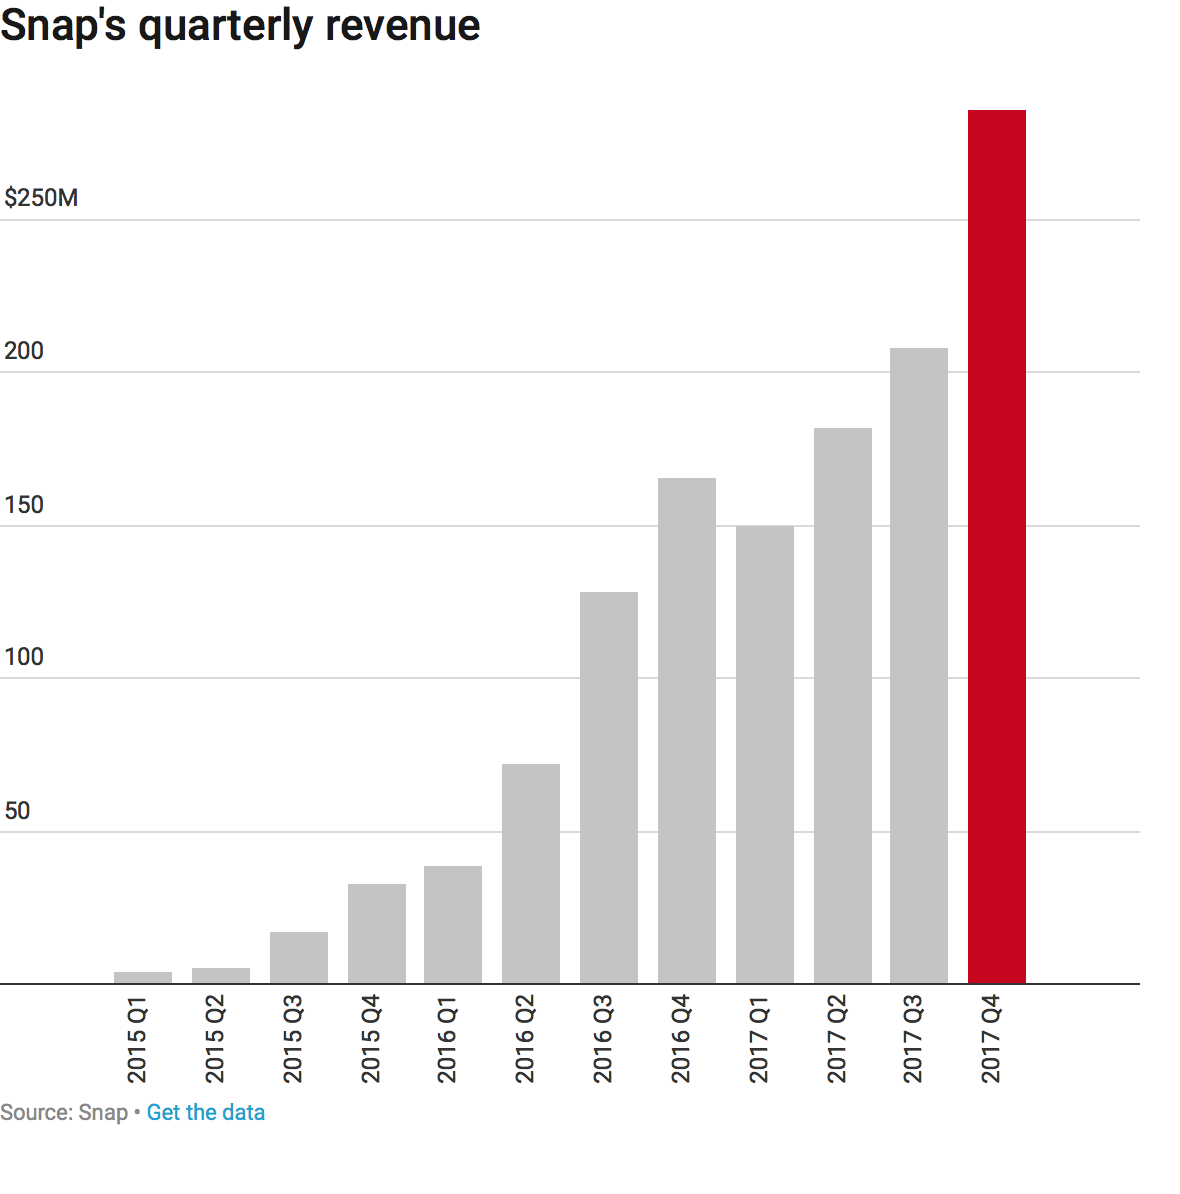 Snap beat expectations and sent its stock price skyrocketing-still minus profit